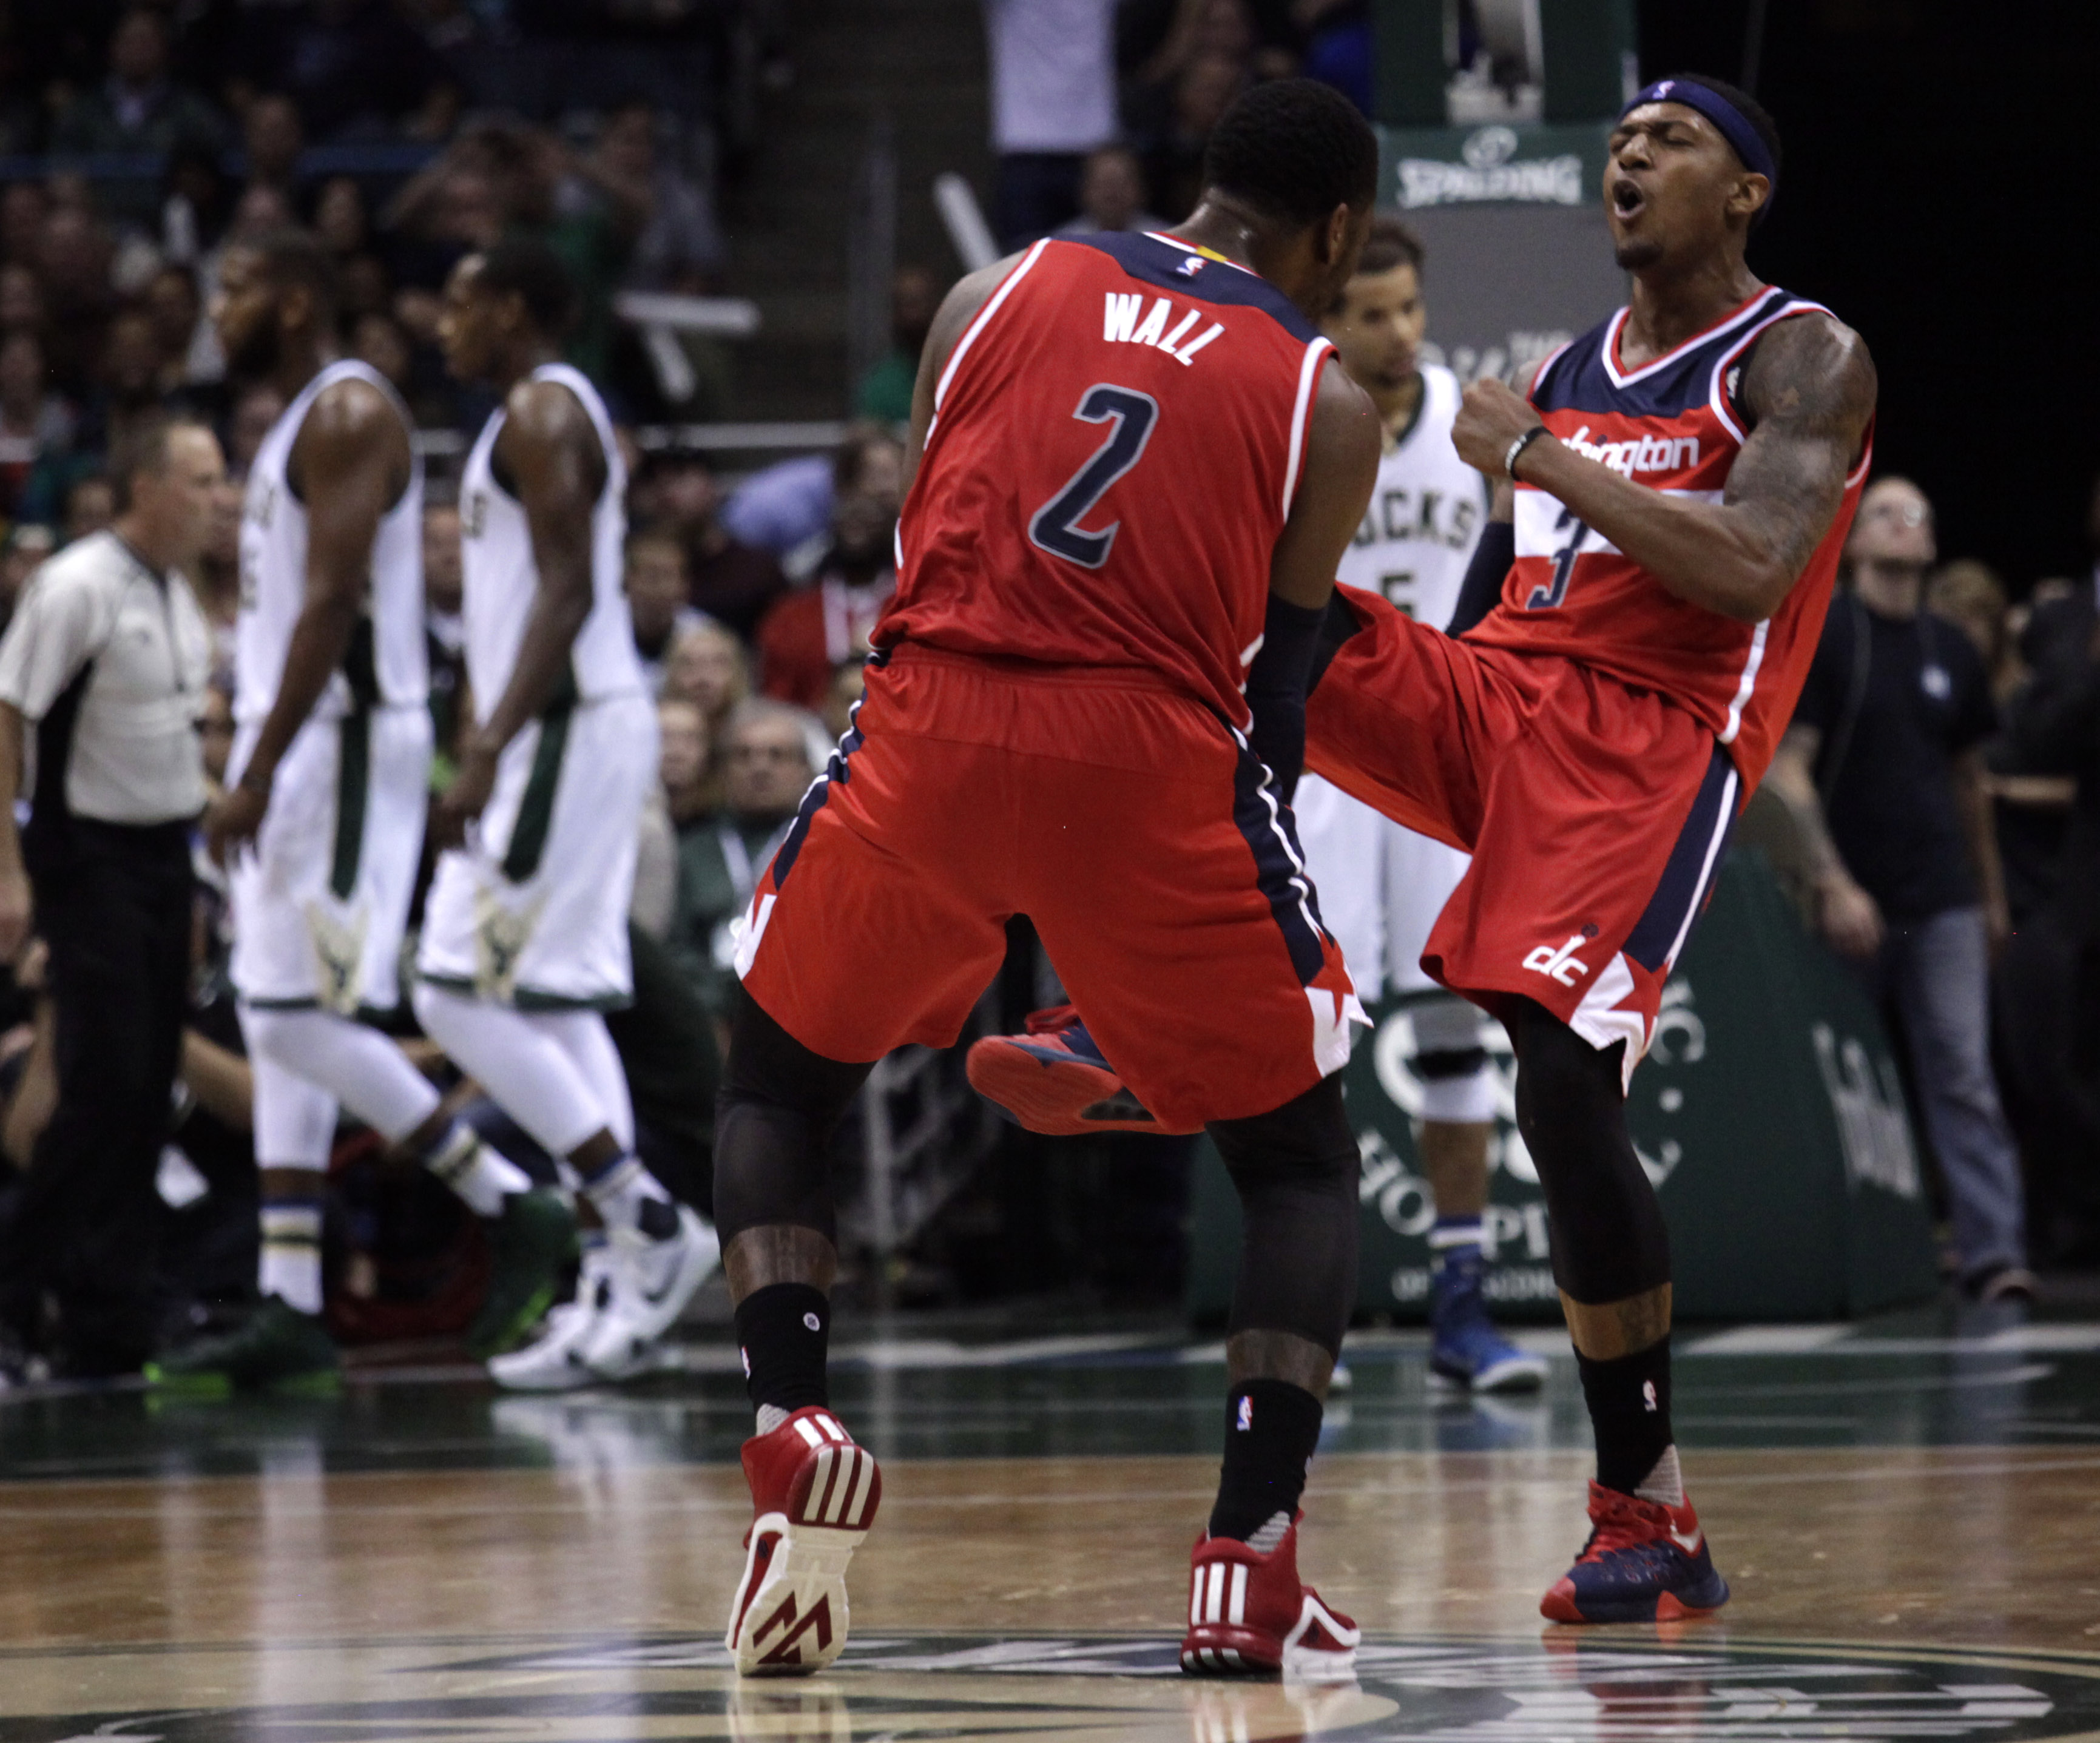 Washington Wizards guard Bradley Beal, right, reacts with teammate John Wall, left, after making a three-point basket against the Milwaukee Bucks during the second half of an NBA basketball game Friday, Oct. 30, 2015, in Milwaukee. The Wizards defeated th